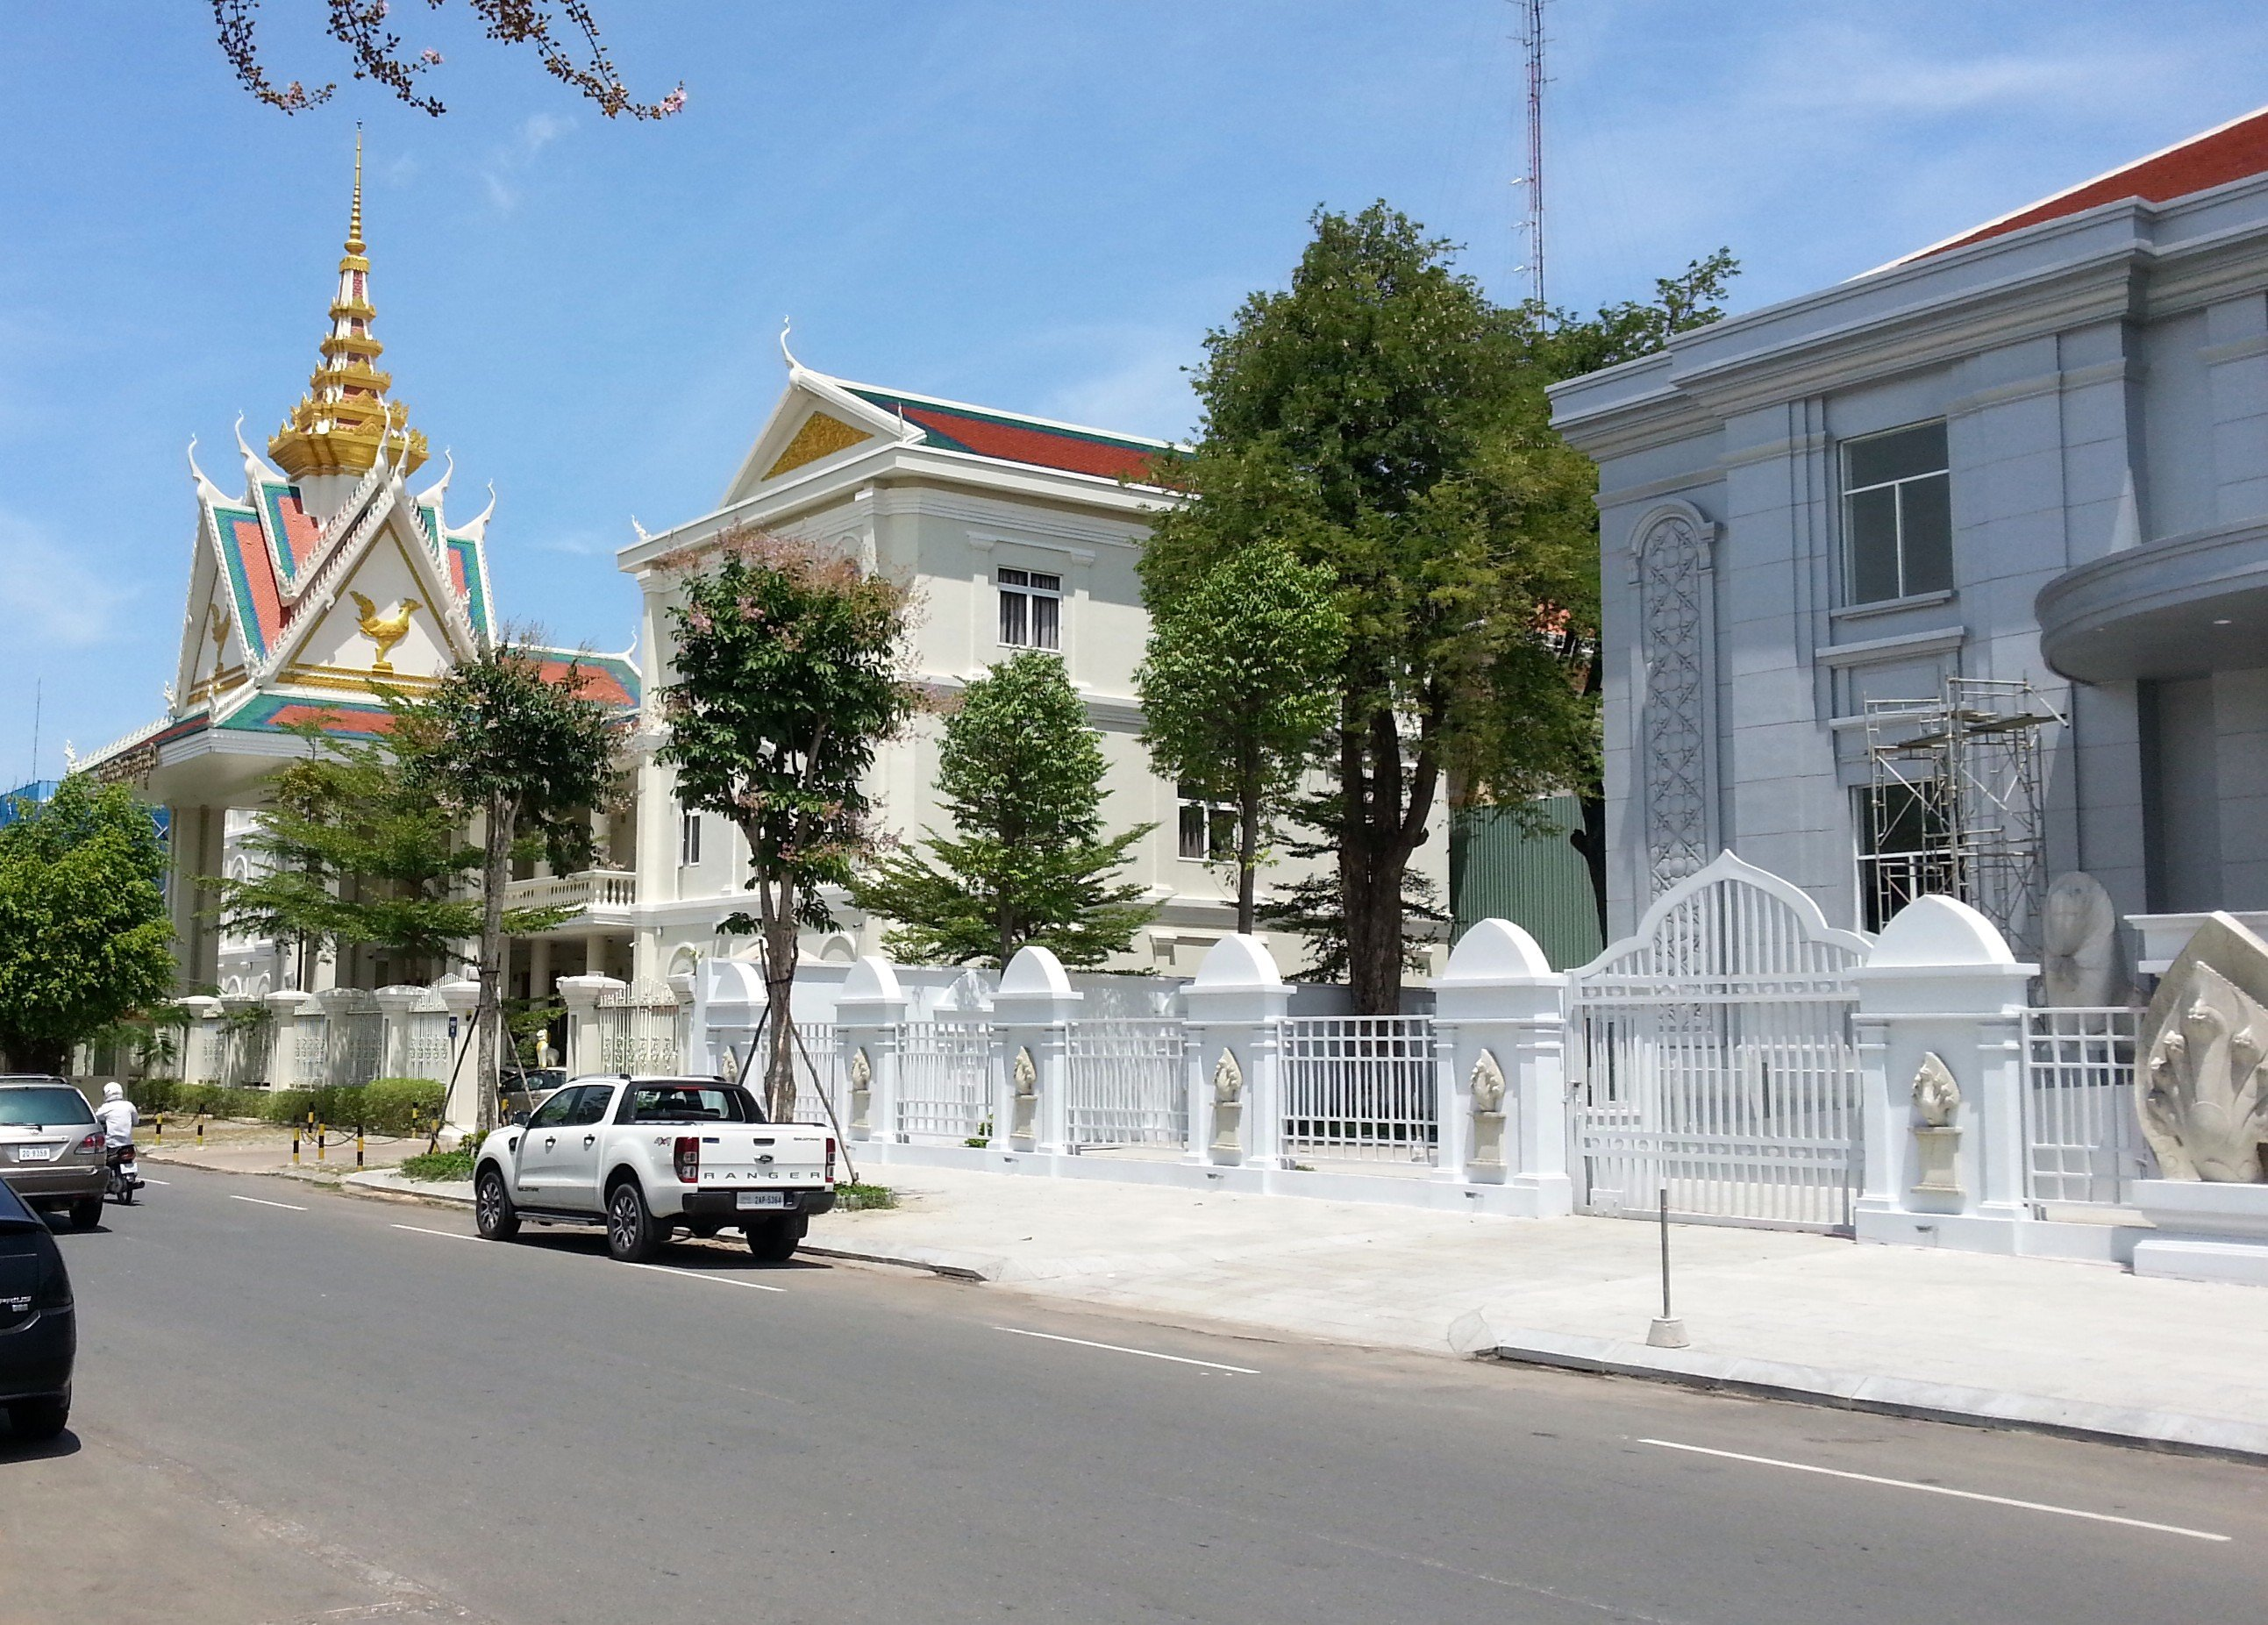 The Cambodia Securities Exchange is on Street 106